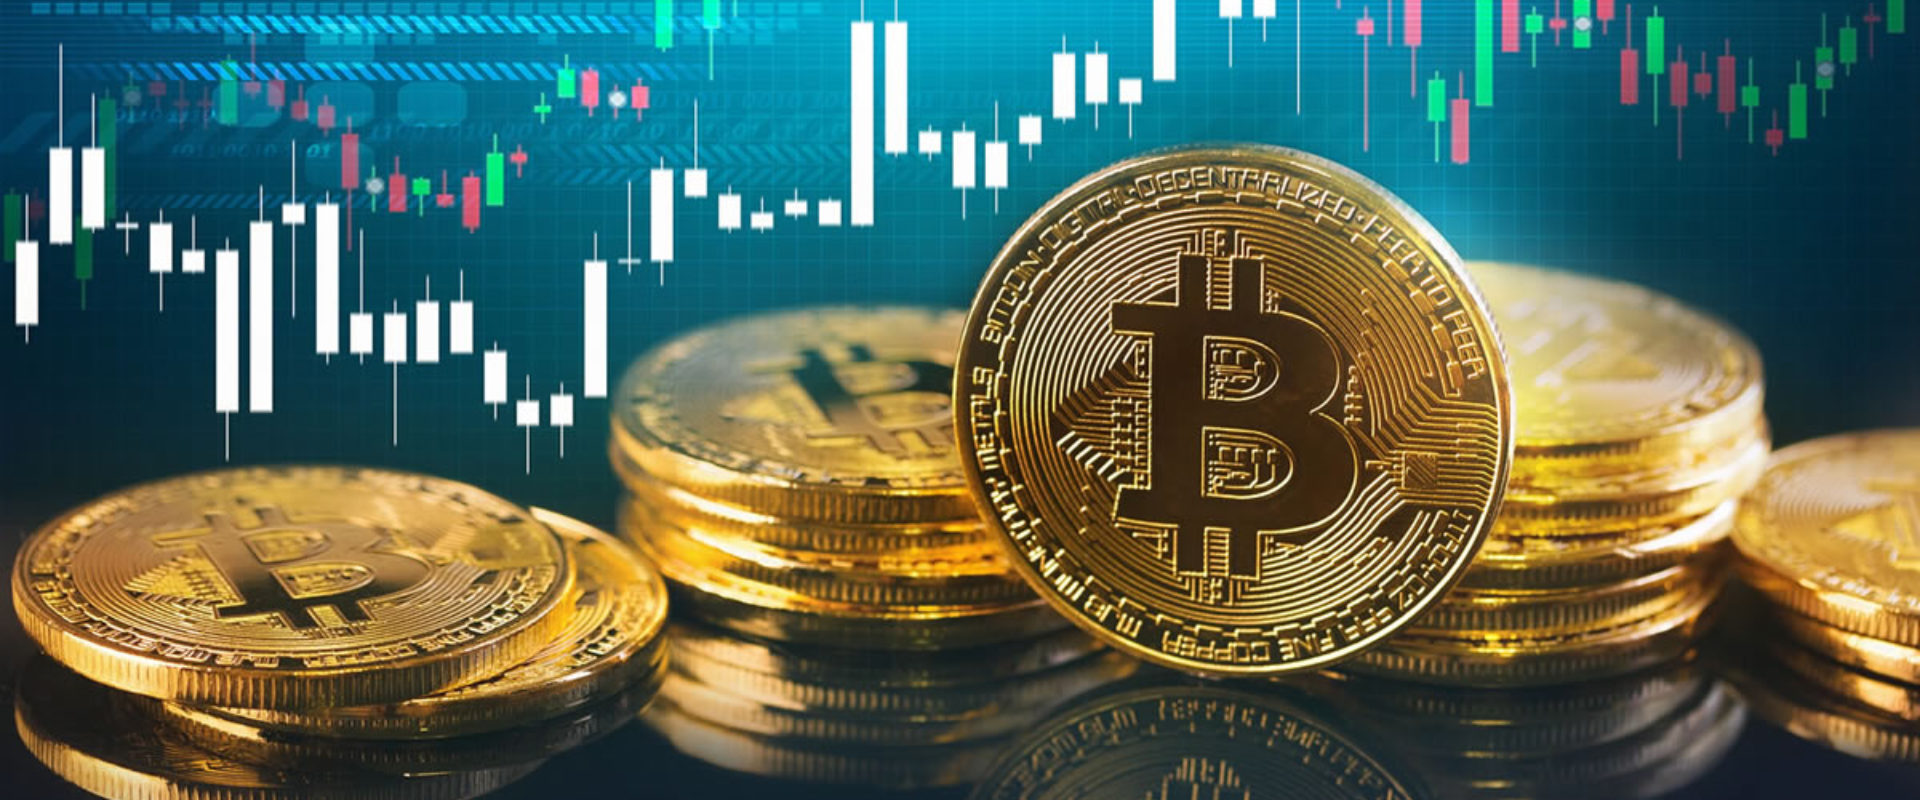 Following an Epic Surge, Analyst Expects Bitcoin to Pullback to $4,300